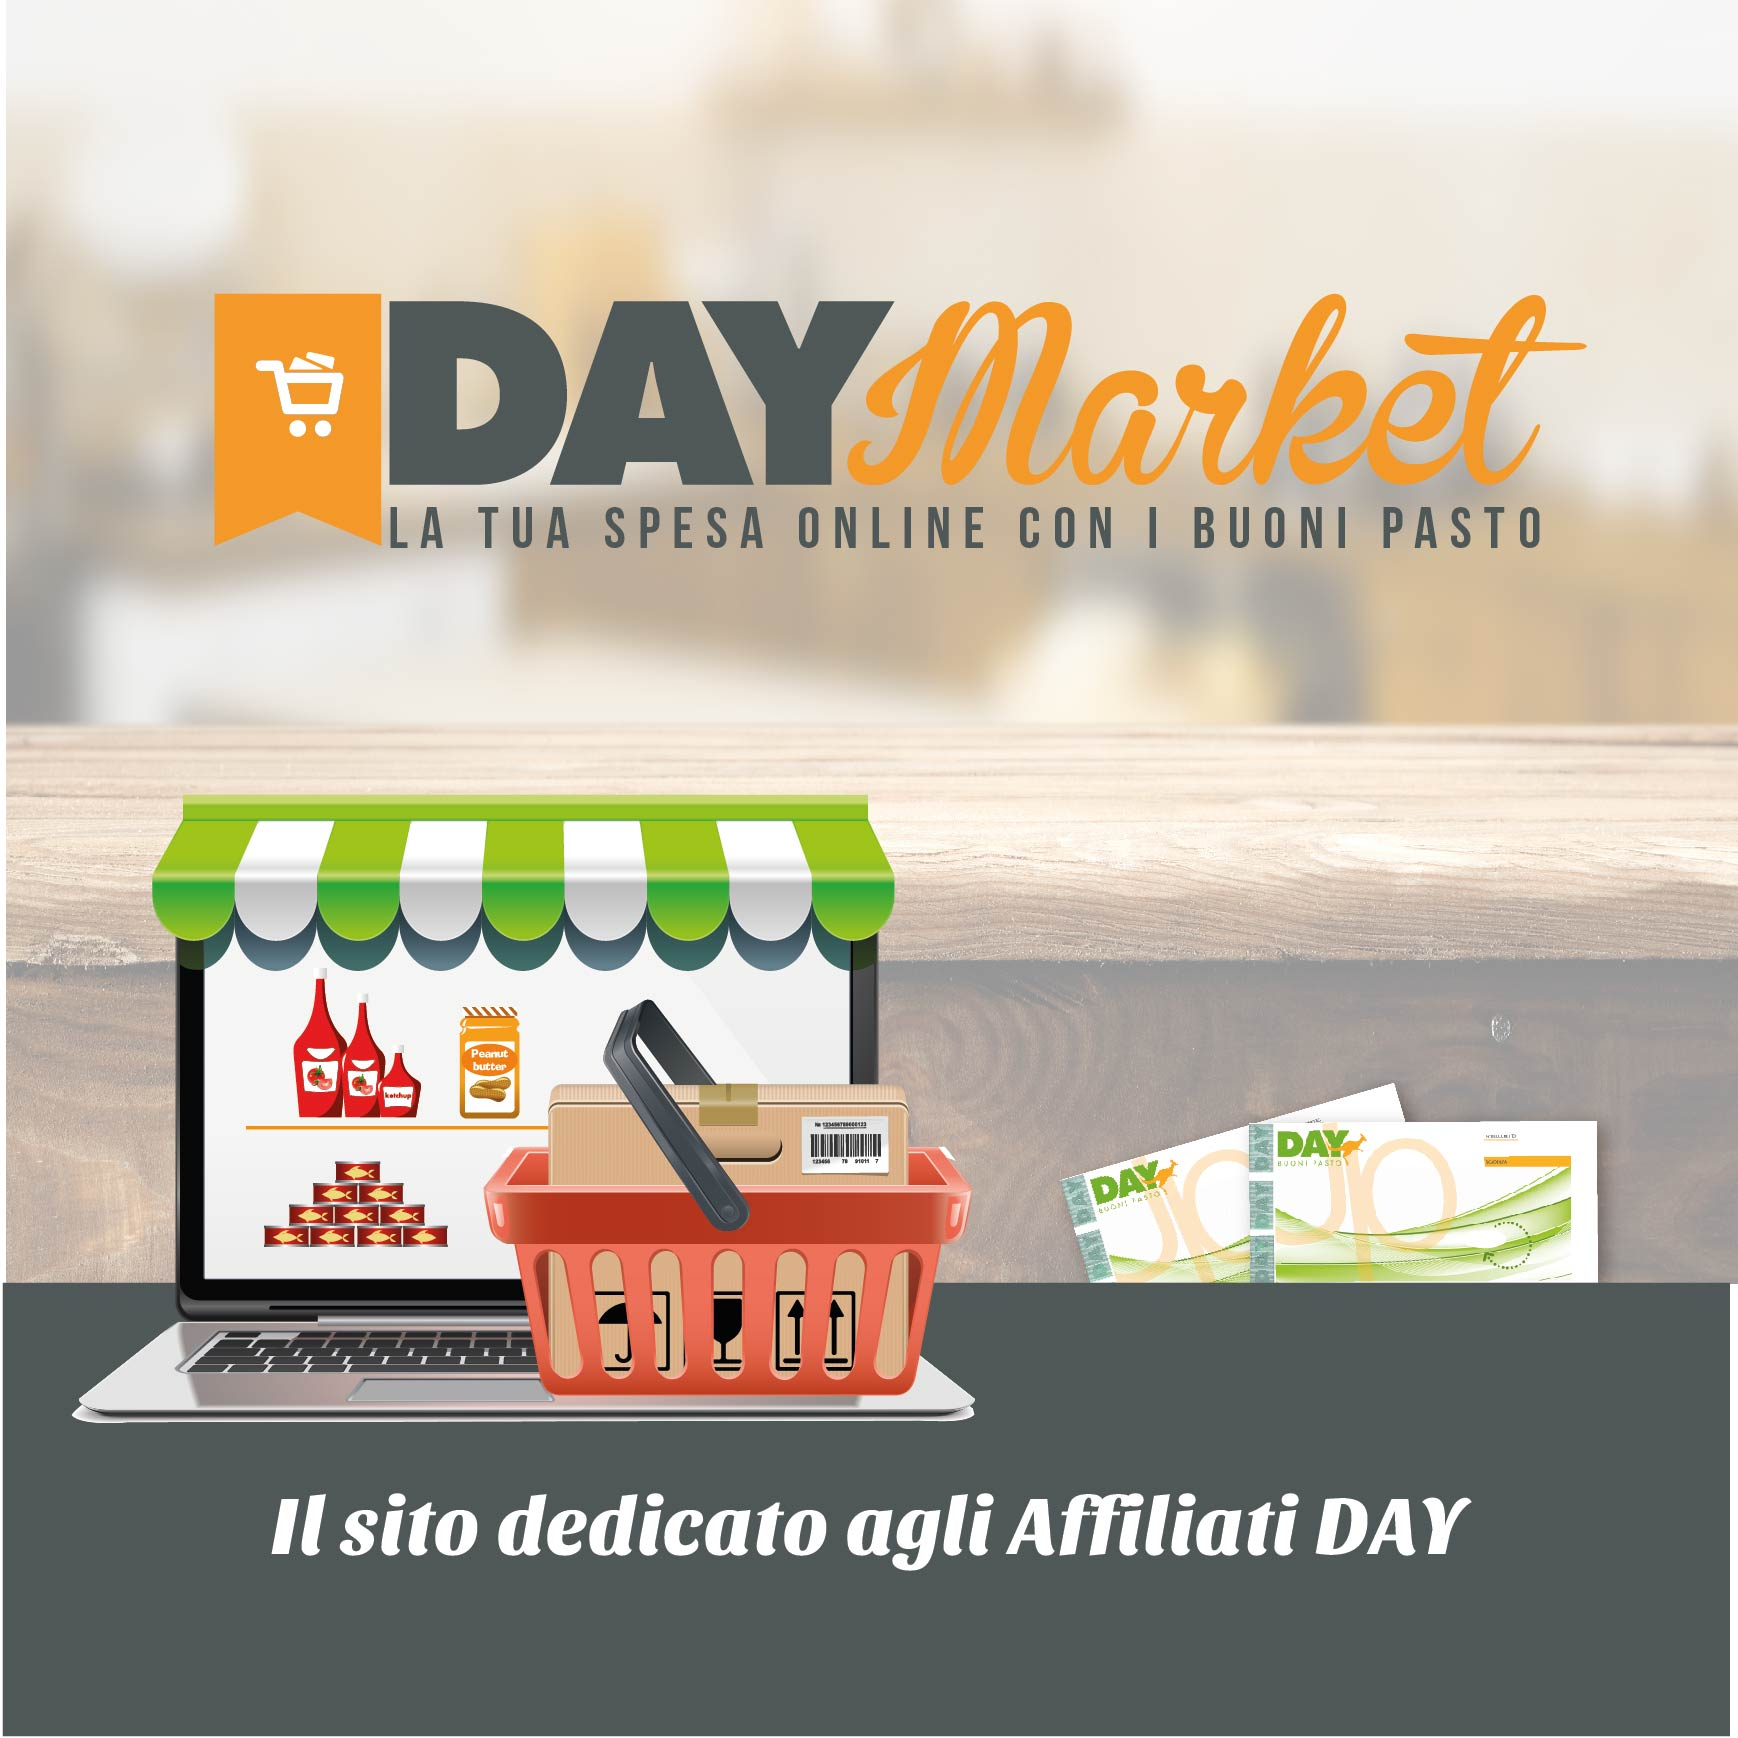 Day Market, e-commerce per esercizi affiliati